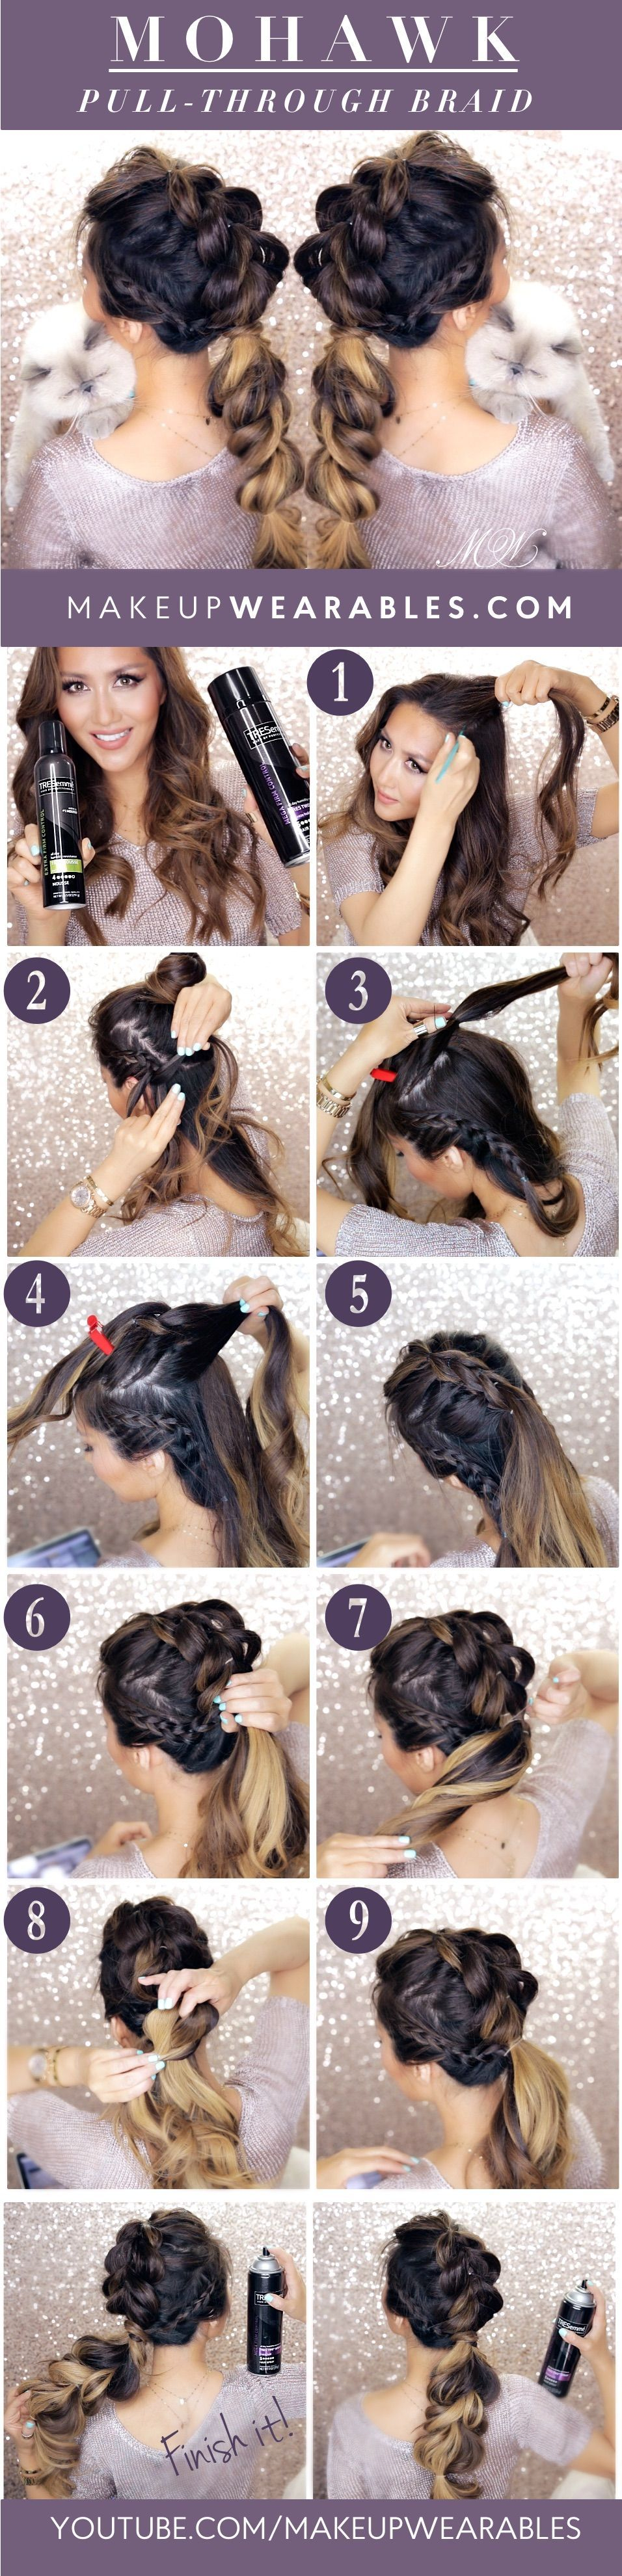 Mohawk pull through braid hairstyle makeupwearables hair tutorial